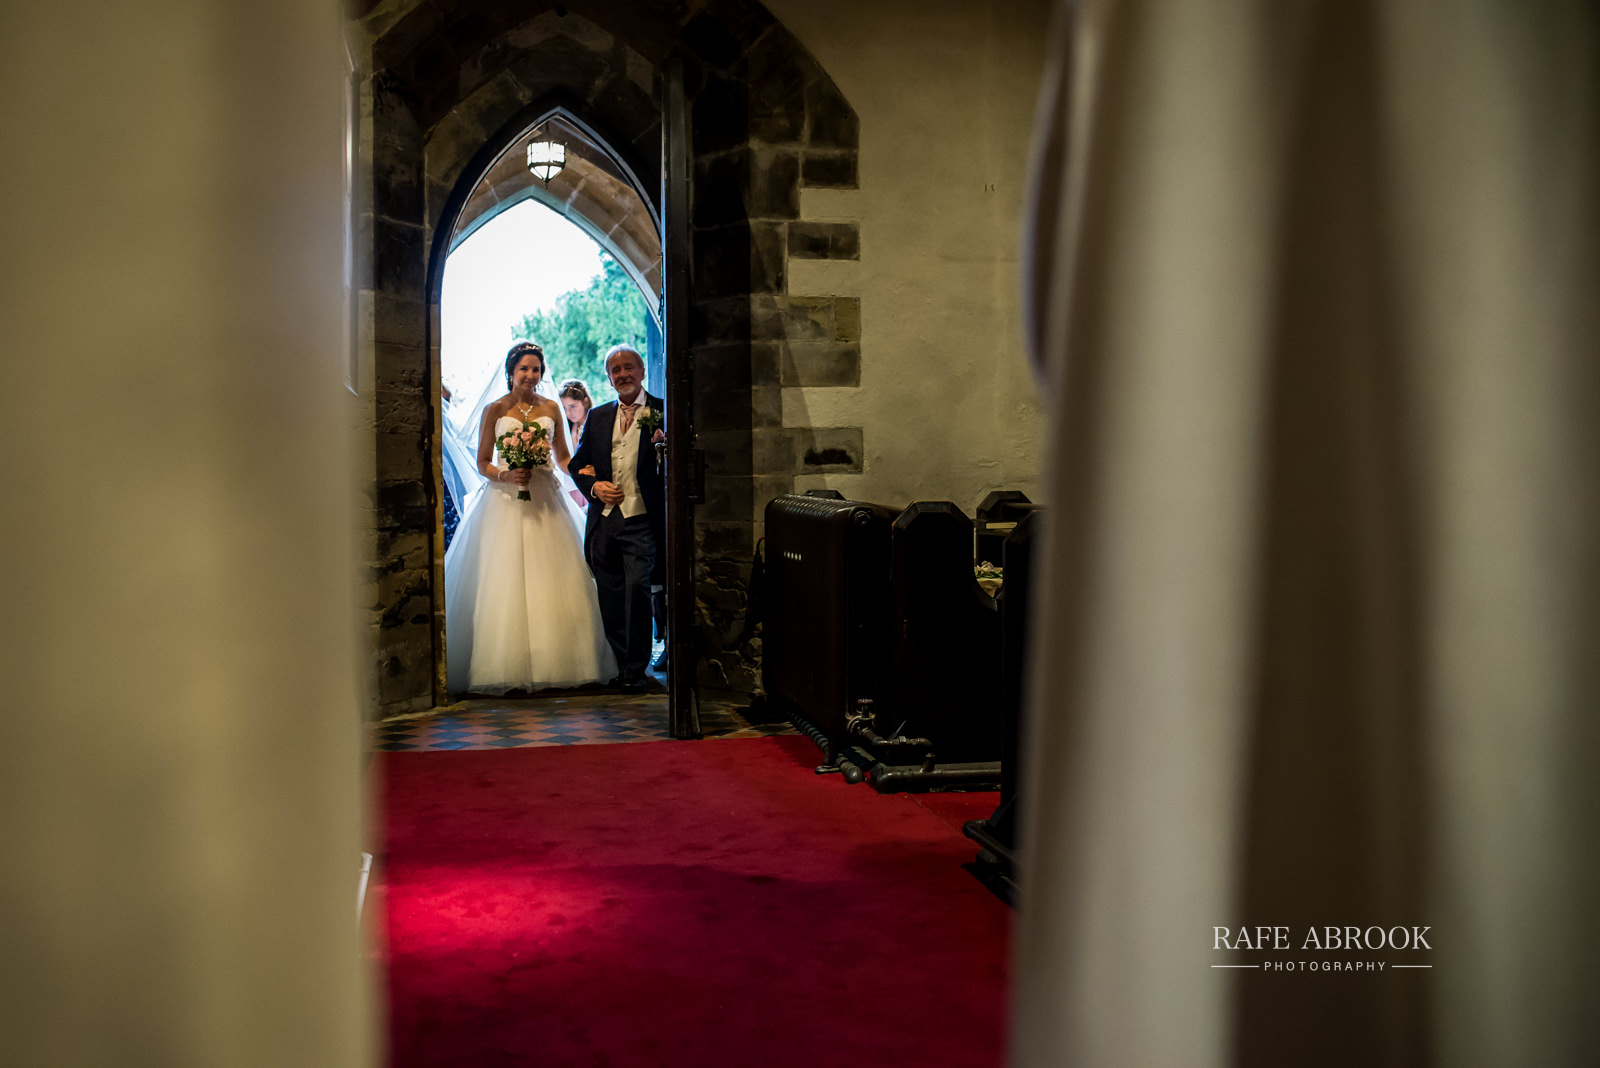 goldsborough hall wedding harrogate knaresborough yorkshire hertfordshire wedding photographer-1120.jpg